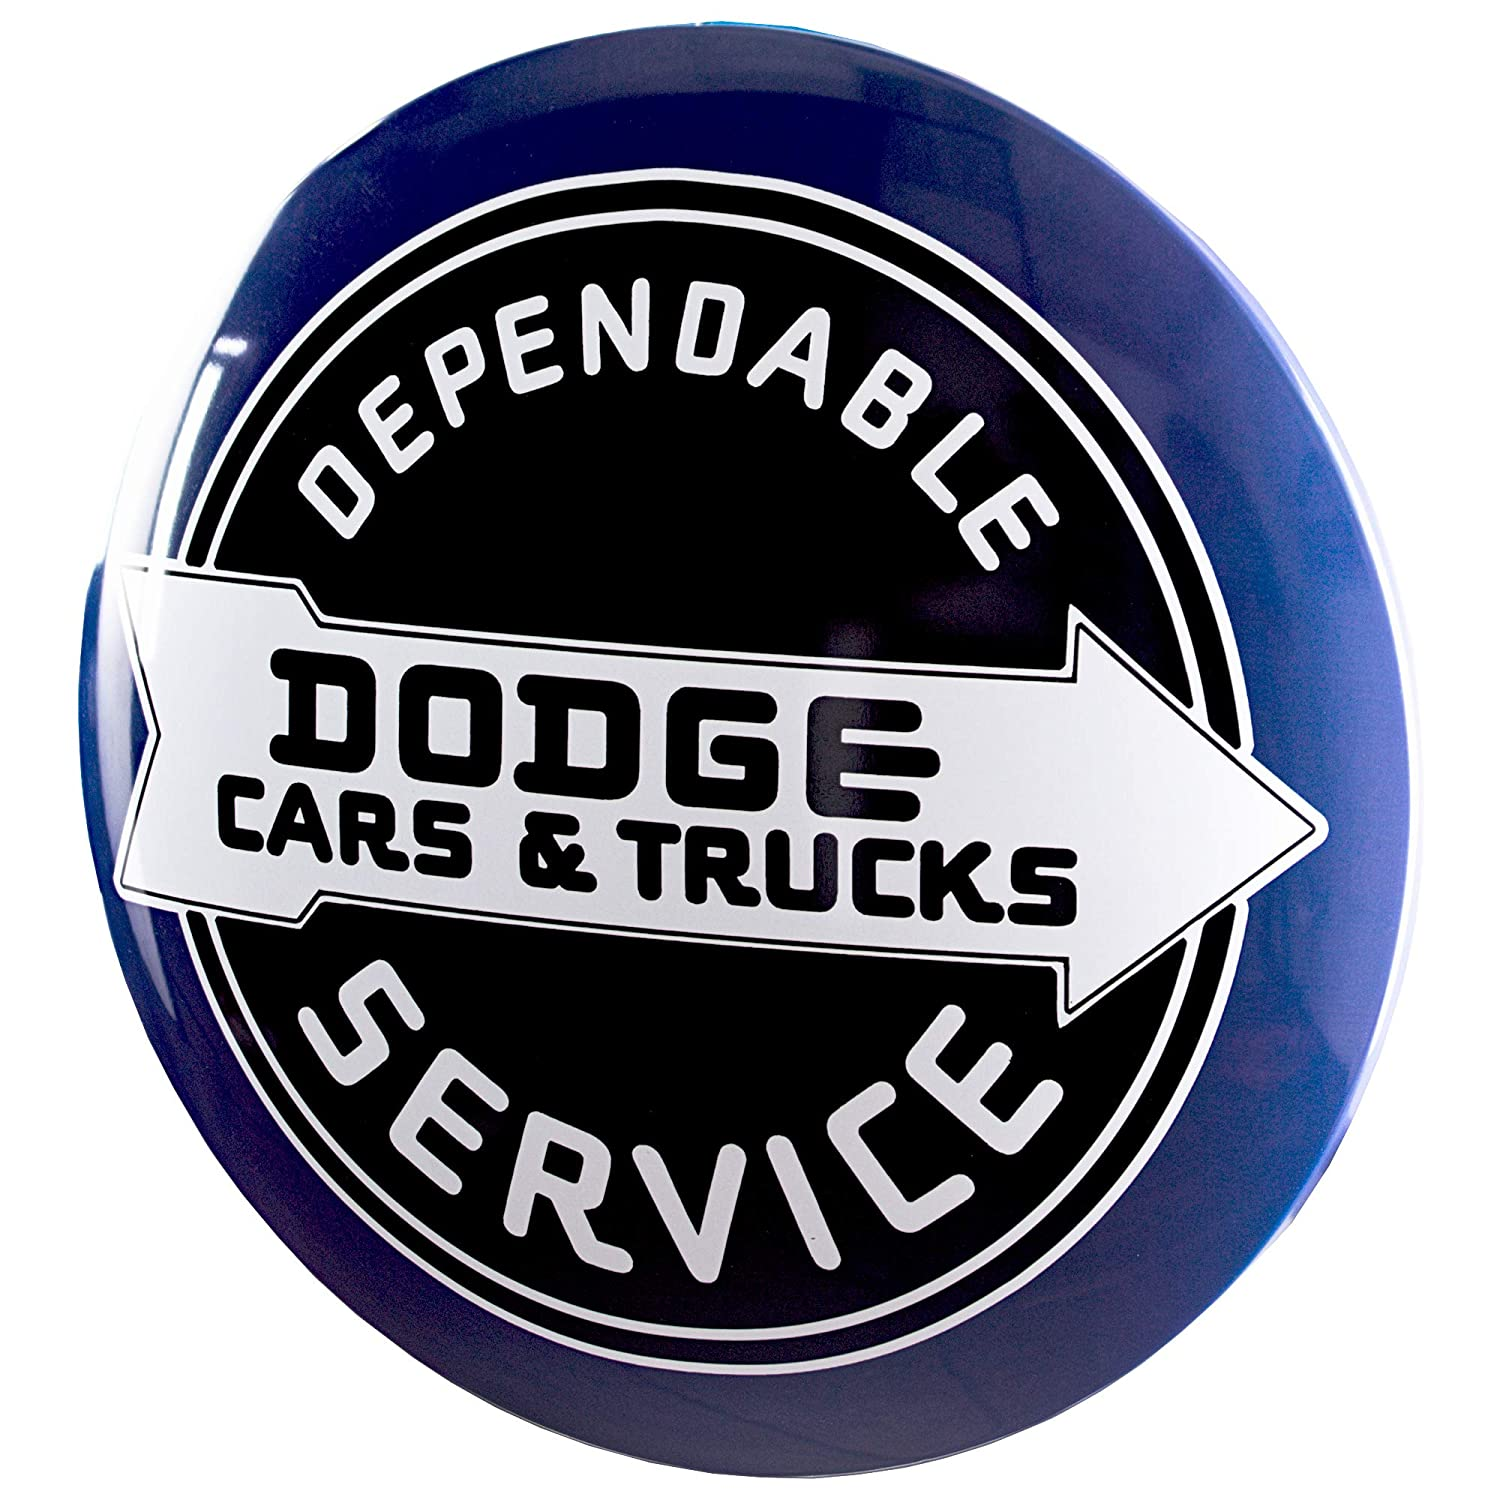 """Officially Licensed Dodge Cars & Trucks Dome Shaped Metal Sign Wall Decor for Bar, Garage or Man Cave (15"""")"""